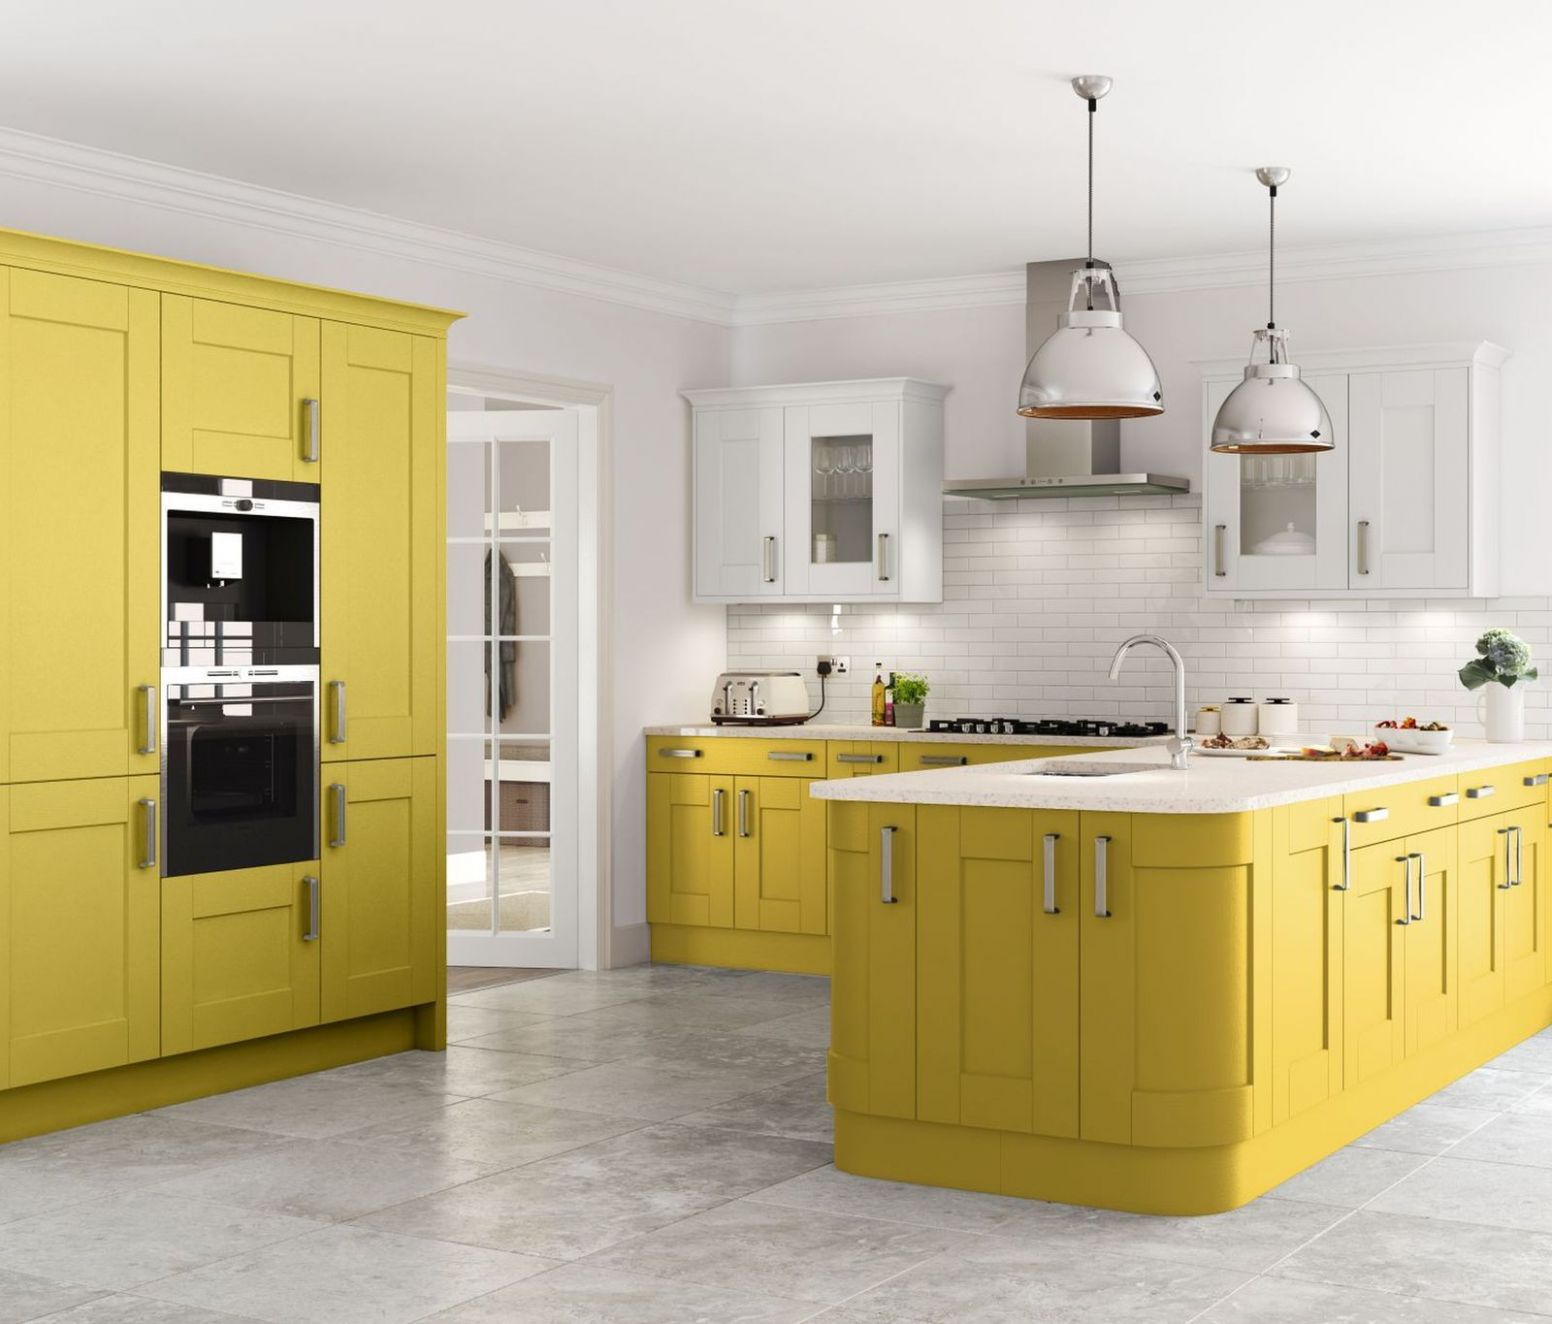 11 bold and beautiful kitchen colour ideas | Kitchen cabinets ...